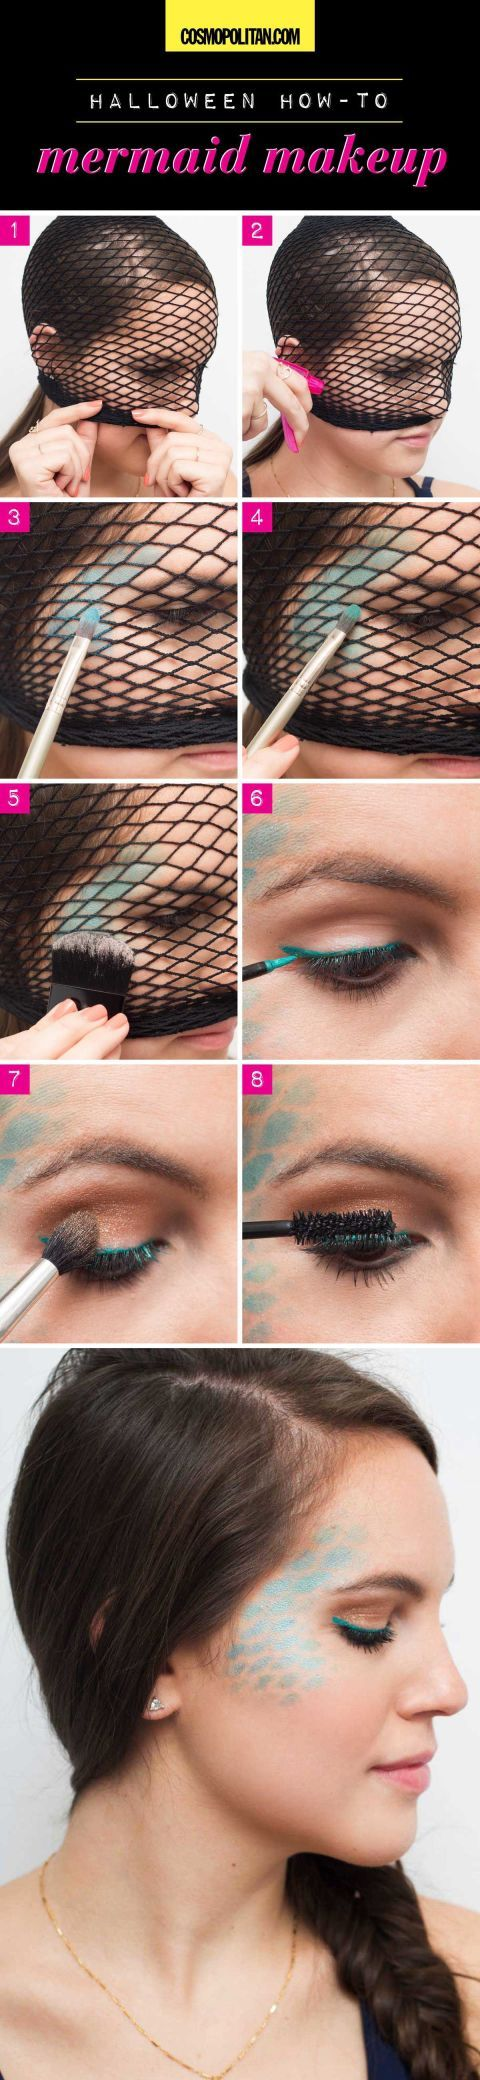 11 Halloween Looks You Can Create With Makeup You Already Have